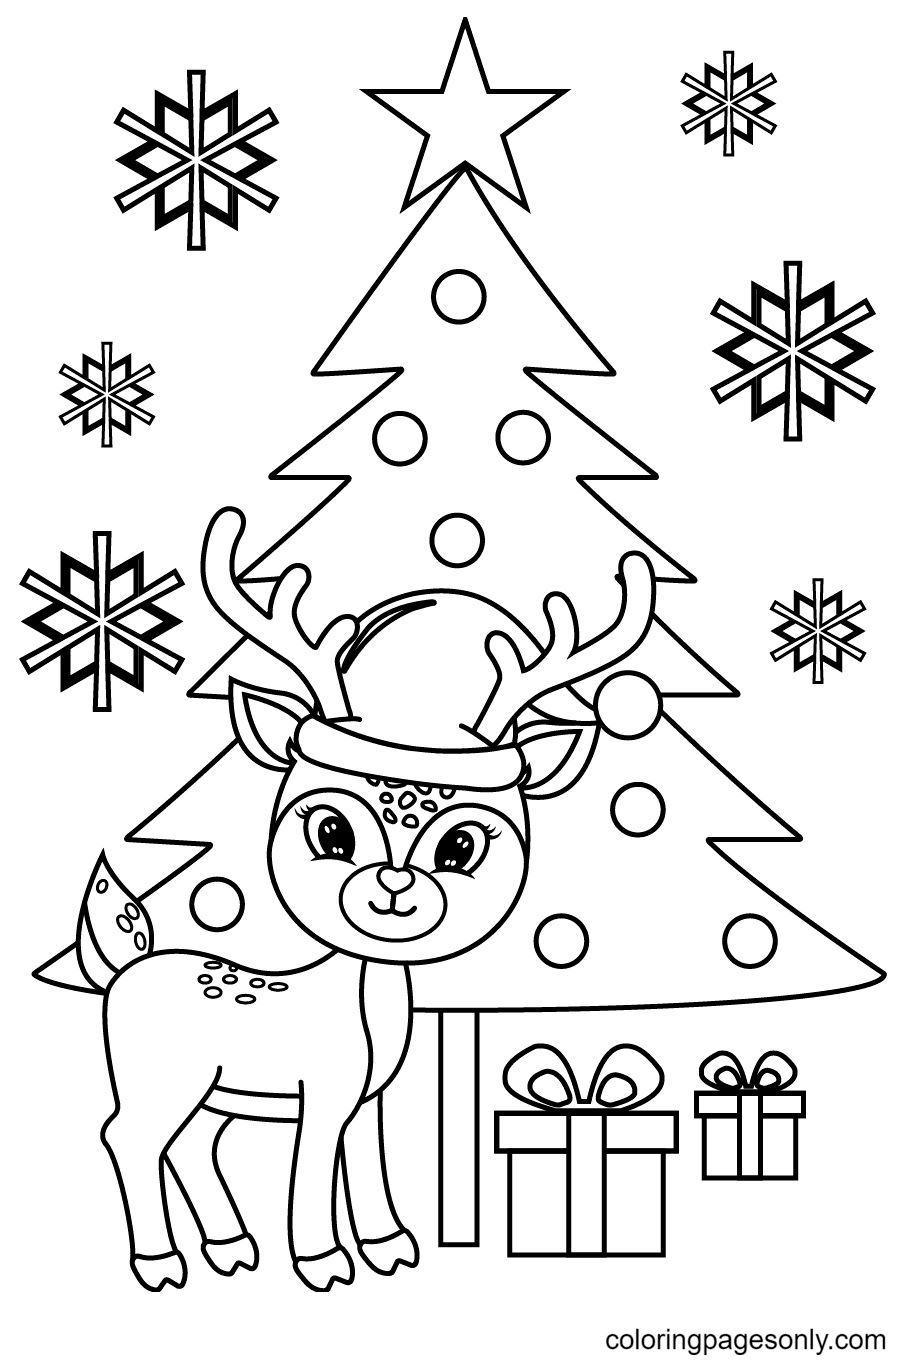 Reindeer With Christmas Tree and Gift Boxes Coloring Page